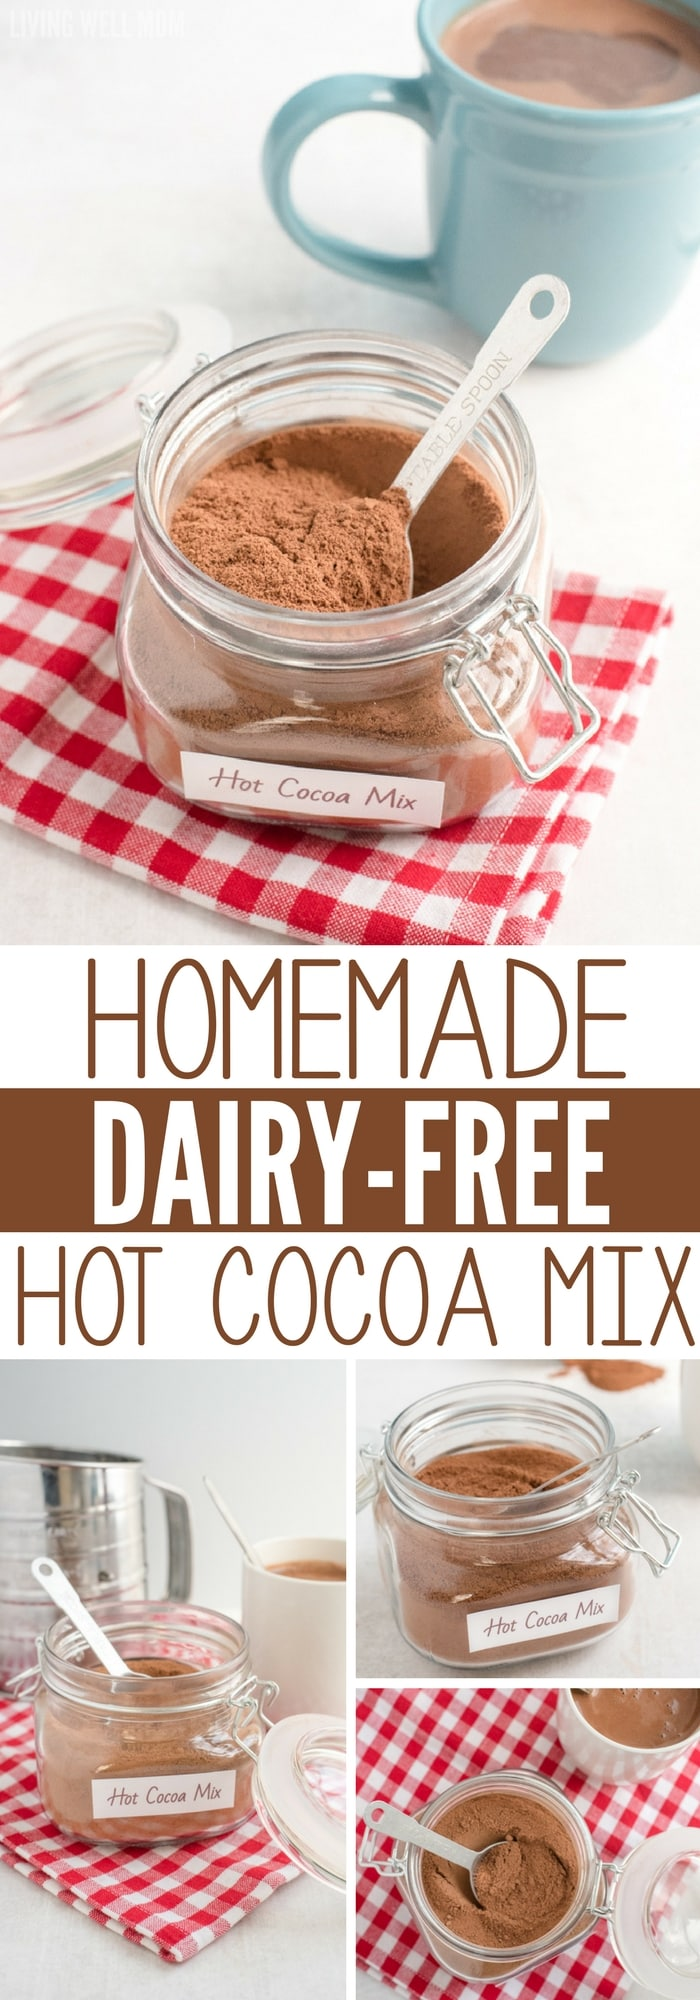 homemade dairy-free hot cocoa mix collage with multiple photos